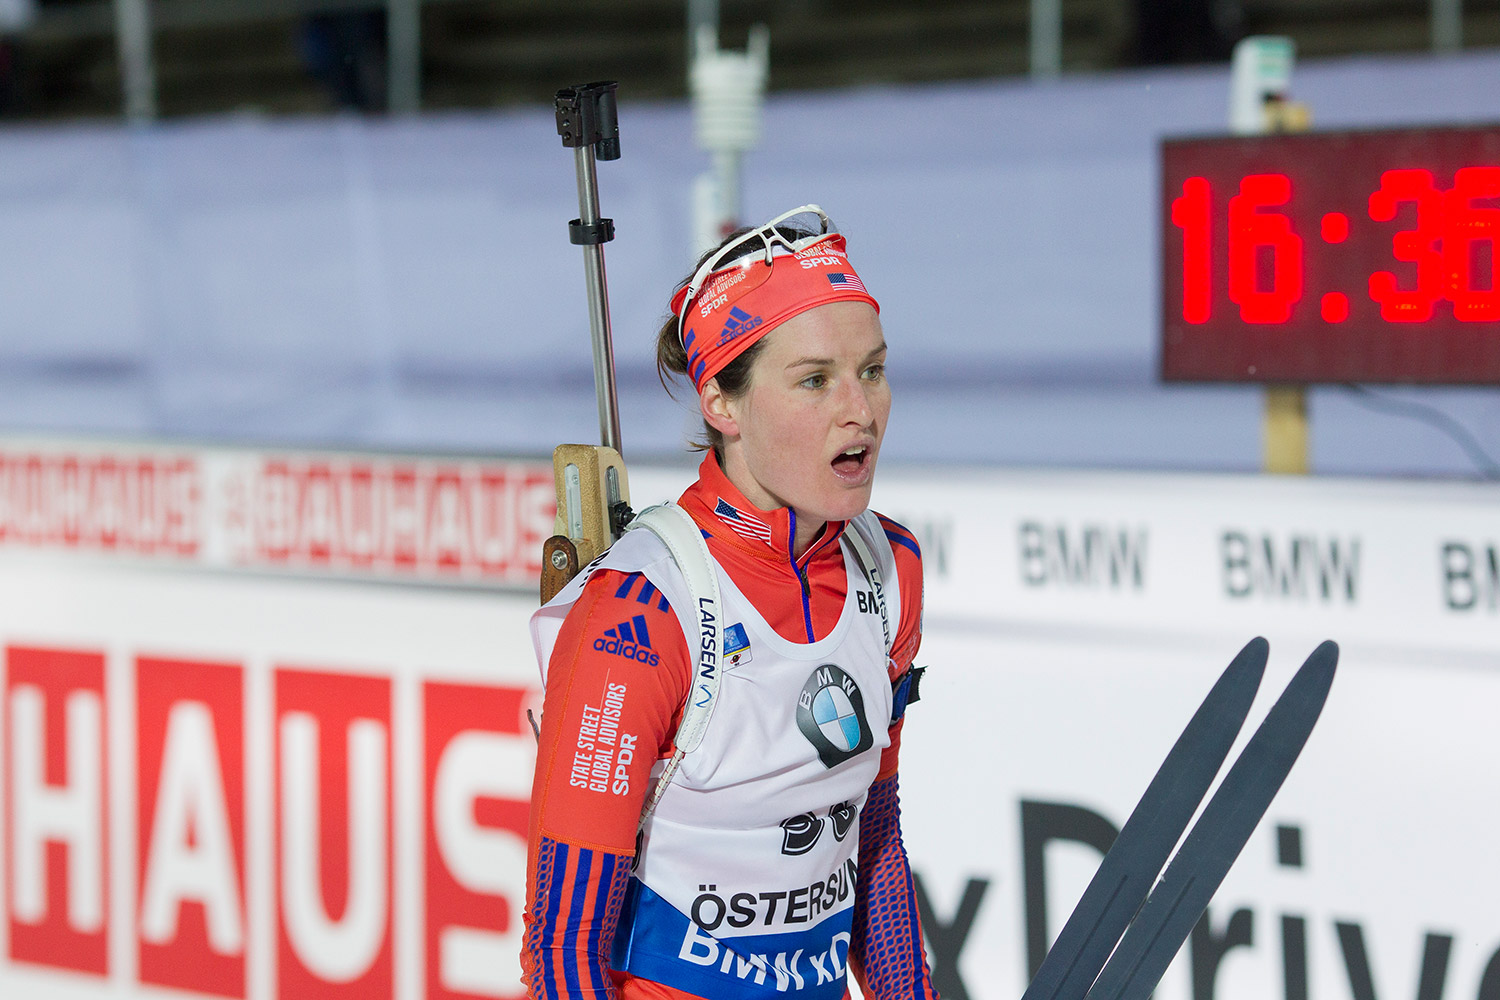 """""""I think we have barely scratched the surface of what Clare's abilities are,"""" says the president and CEO of U.S. Biathlon. """"We need to have her training at the national level for three or four years before we see what she can do."""" Manzoni/NordicFocus"""